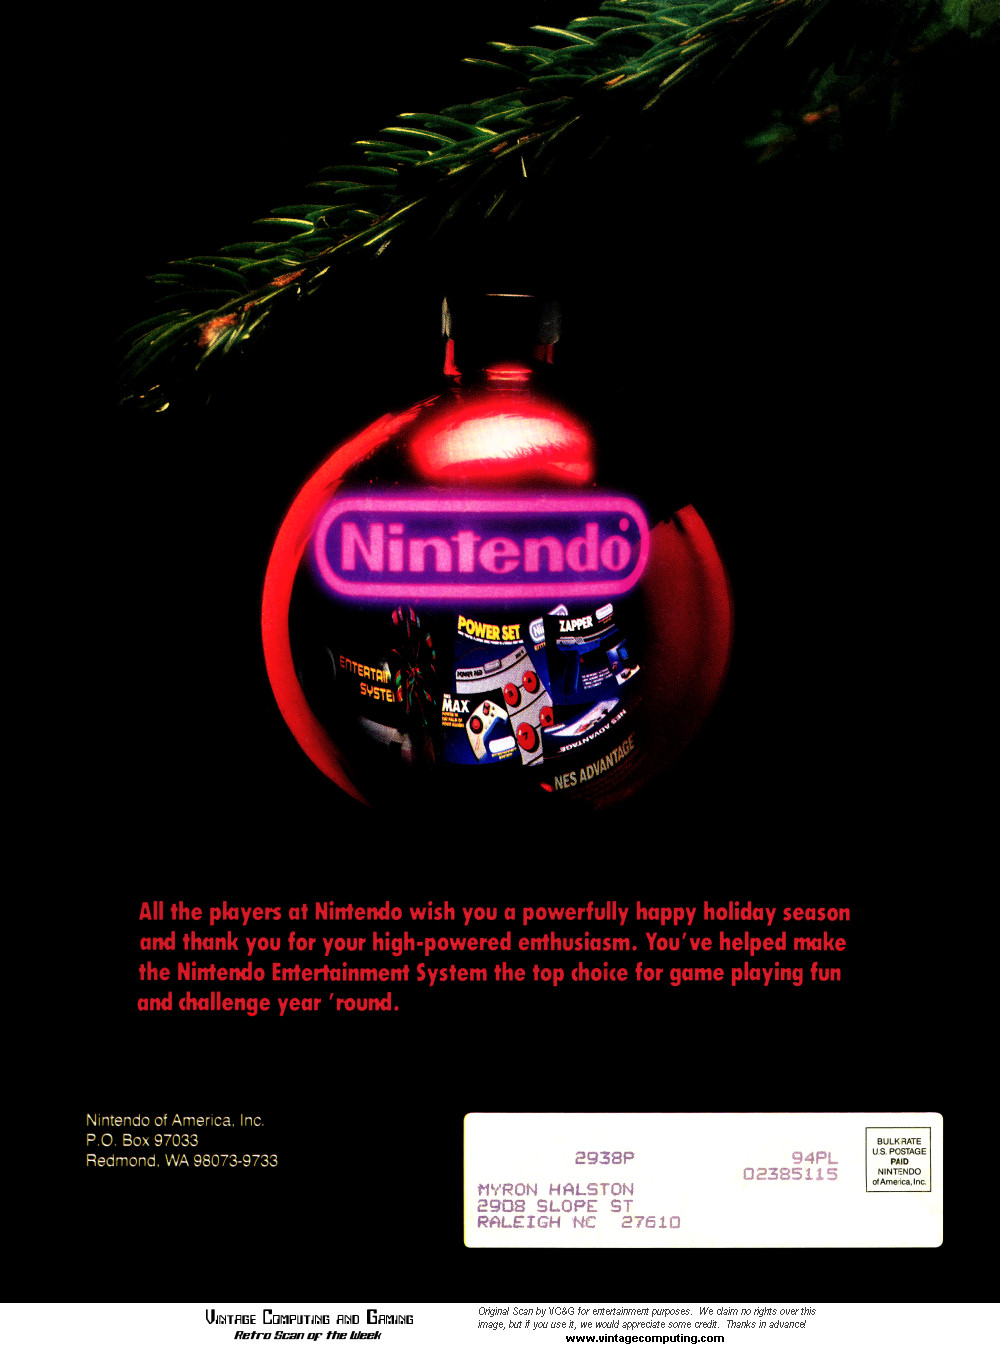 VC&G | » [ Retro Scan of the Week ] Merry Christmas From Nintendo, 1988